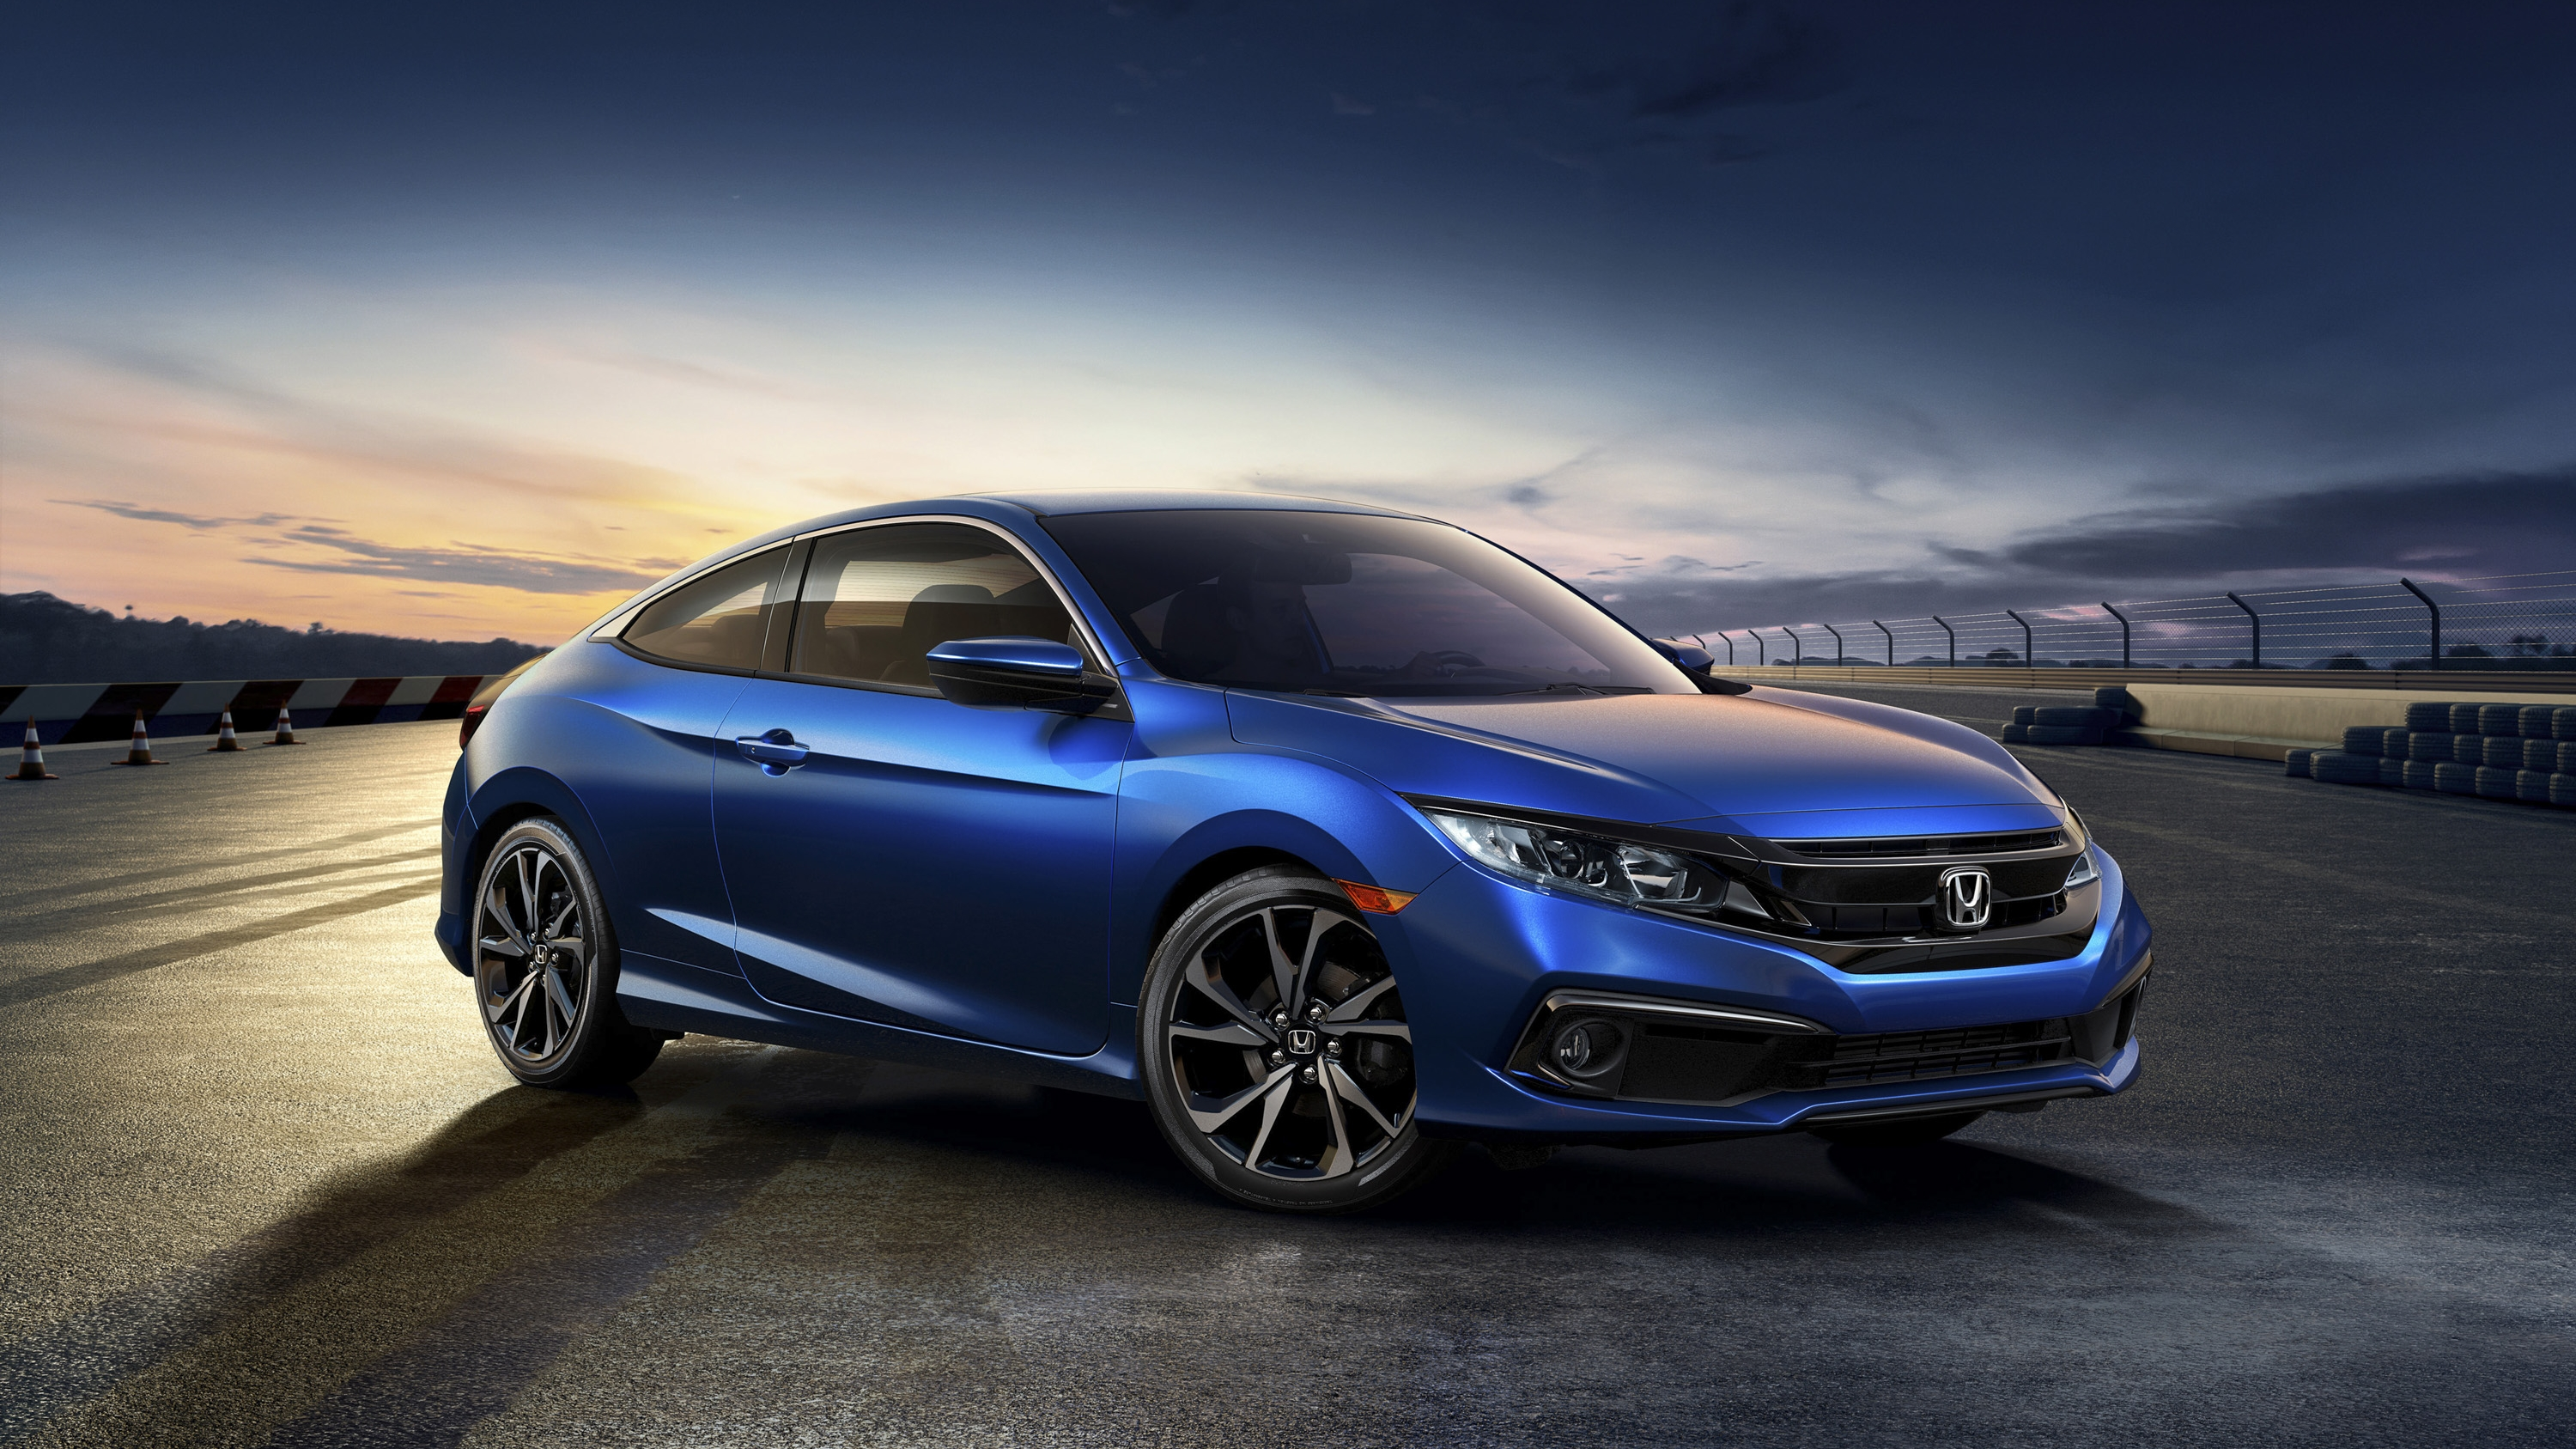 The 2019 Honda Civic Is Safer And Better Looking | Top Speed